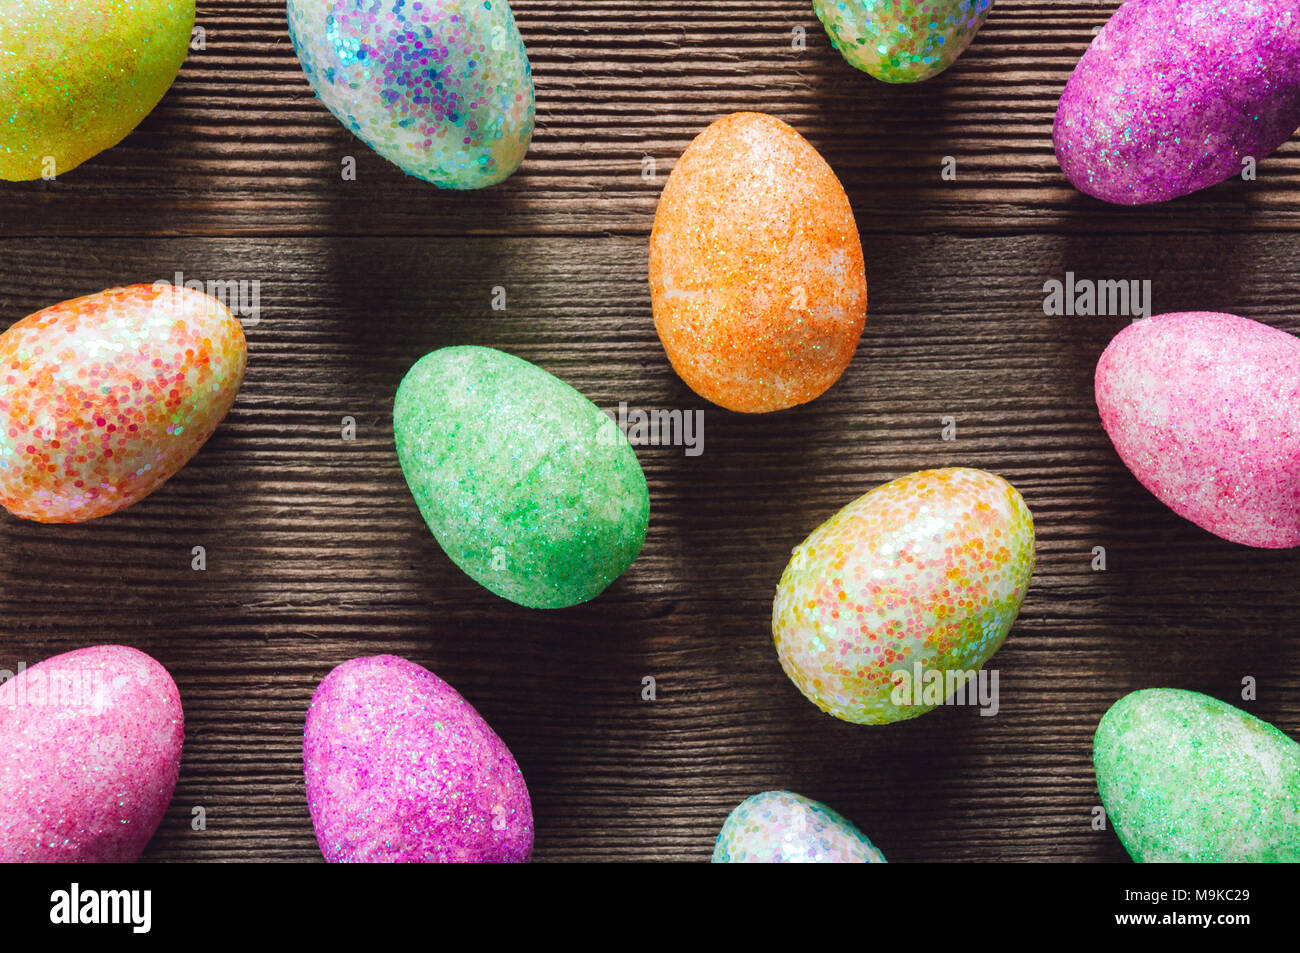 Colorful Eggs Arranged on Wood Table - Stock Image